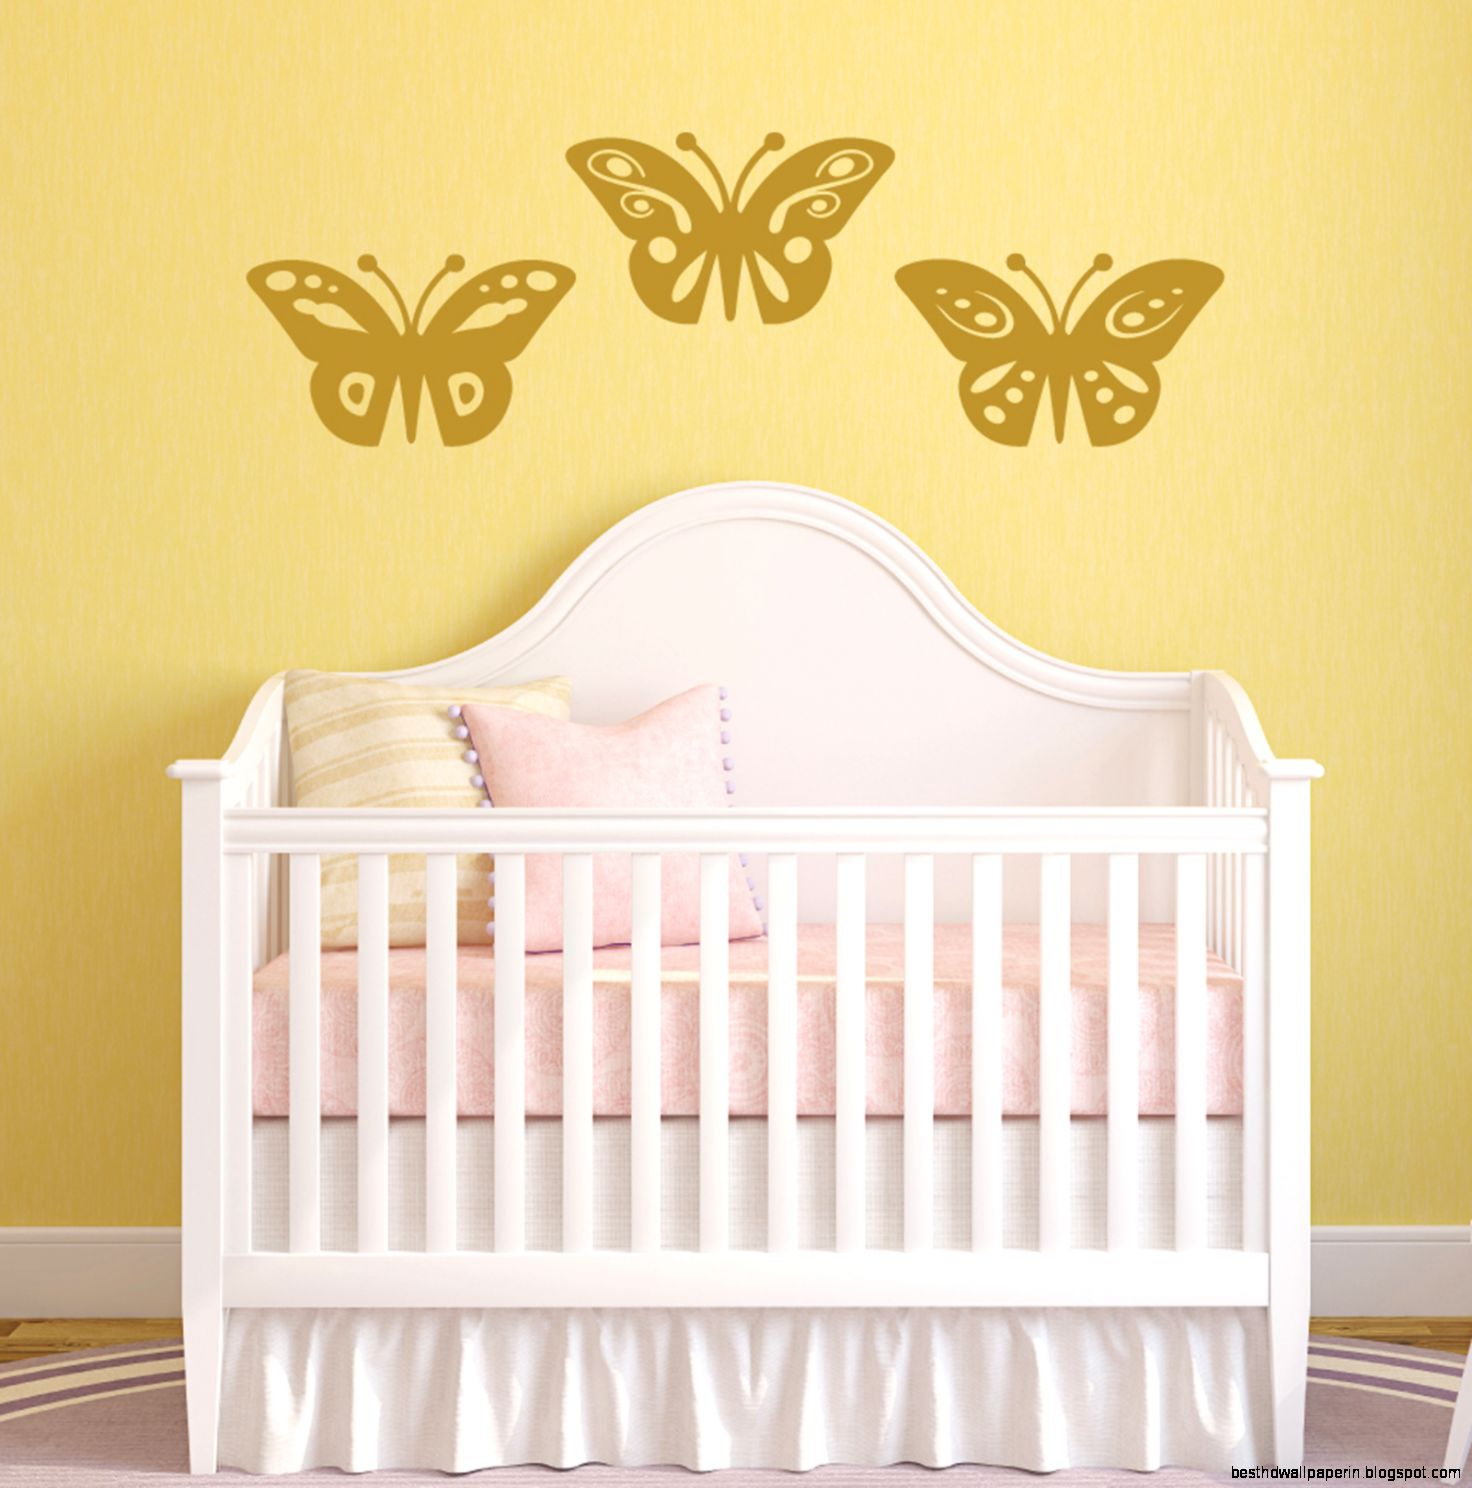 Attractive Baby Names Wall Art Composition - Art & Wall Decor ...